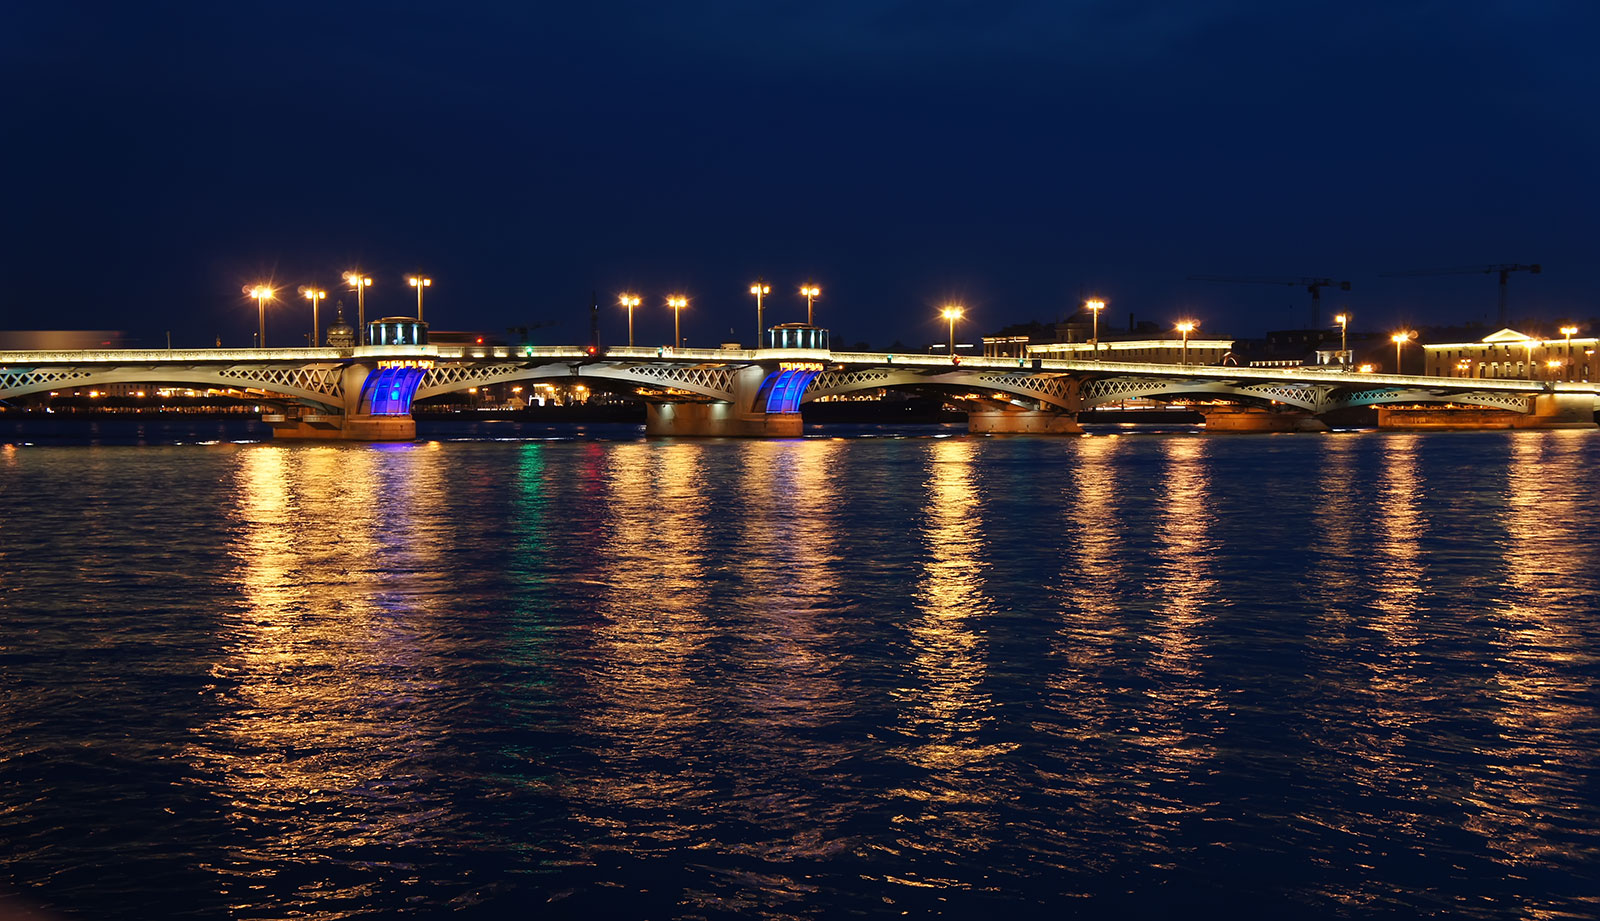 St-Petersburg-Night-4.jpg